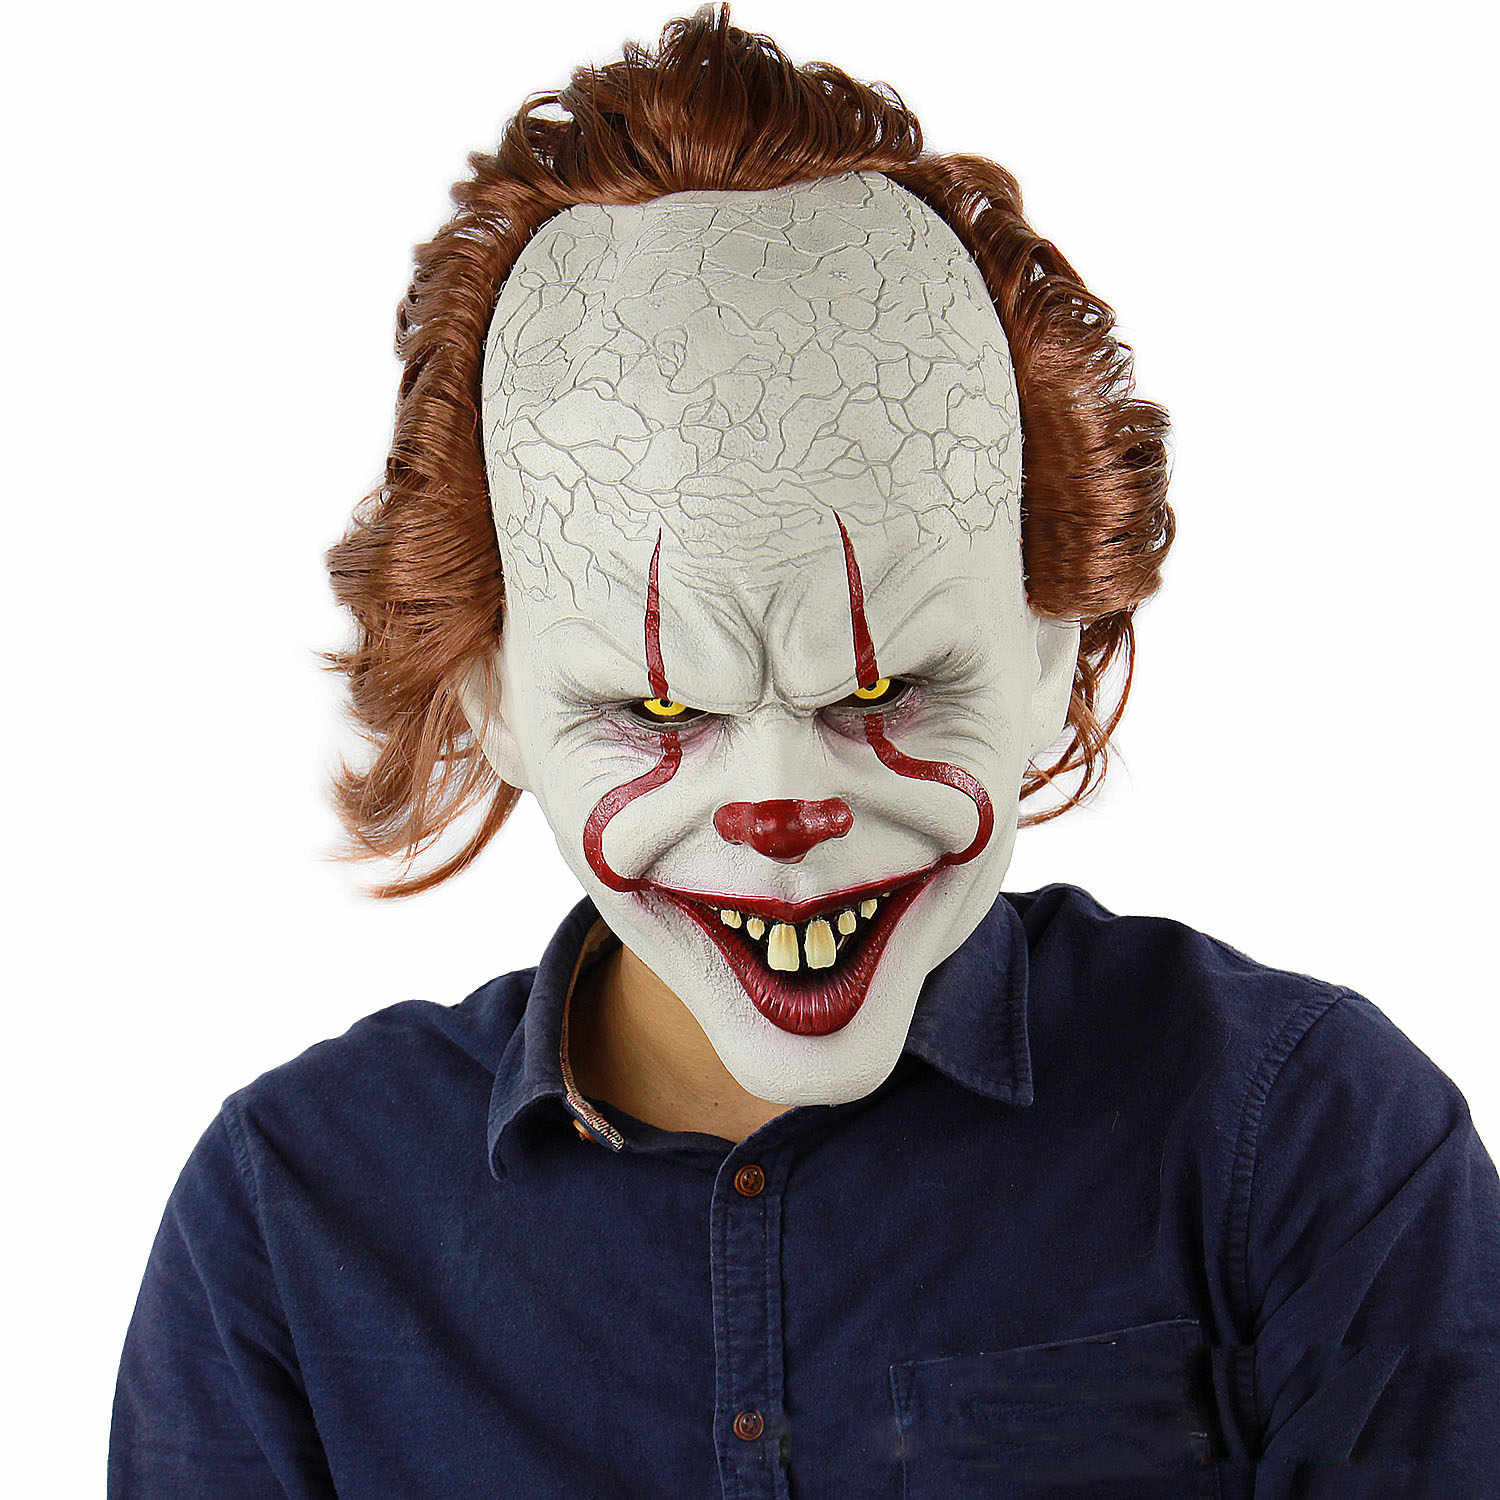 Stephen King's Maschera Pennywise Horror Clown Joker Maschera In Lattice di Halloween Spaventoso Maschera Da Clown Partito Realistico Costume Cosplay Puntelli